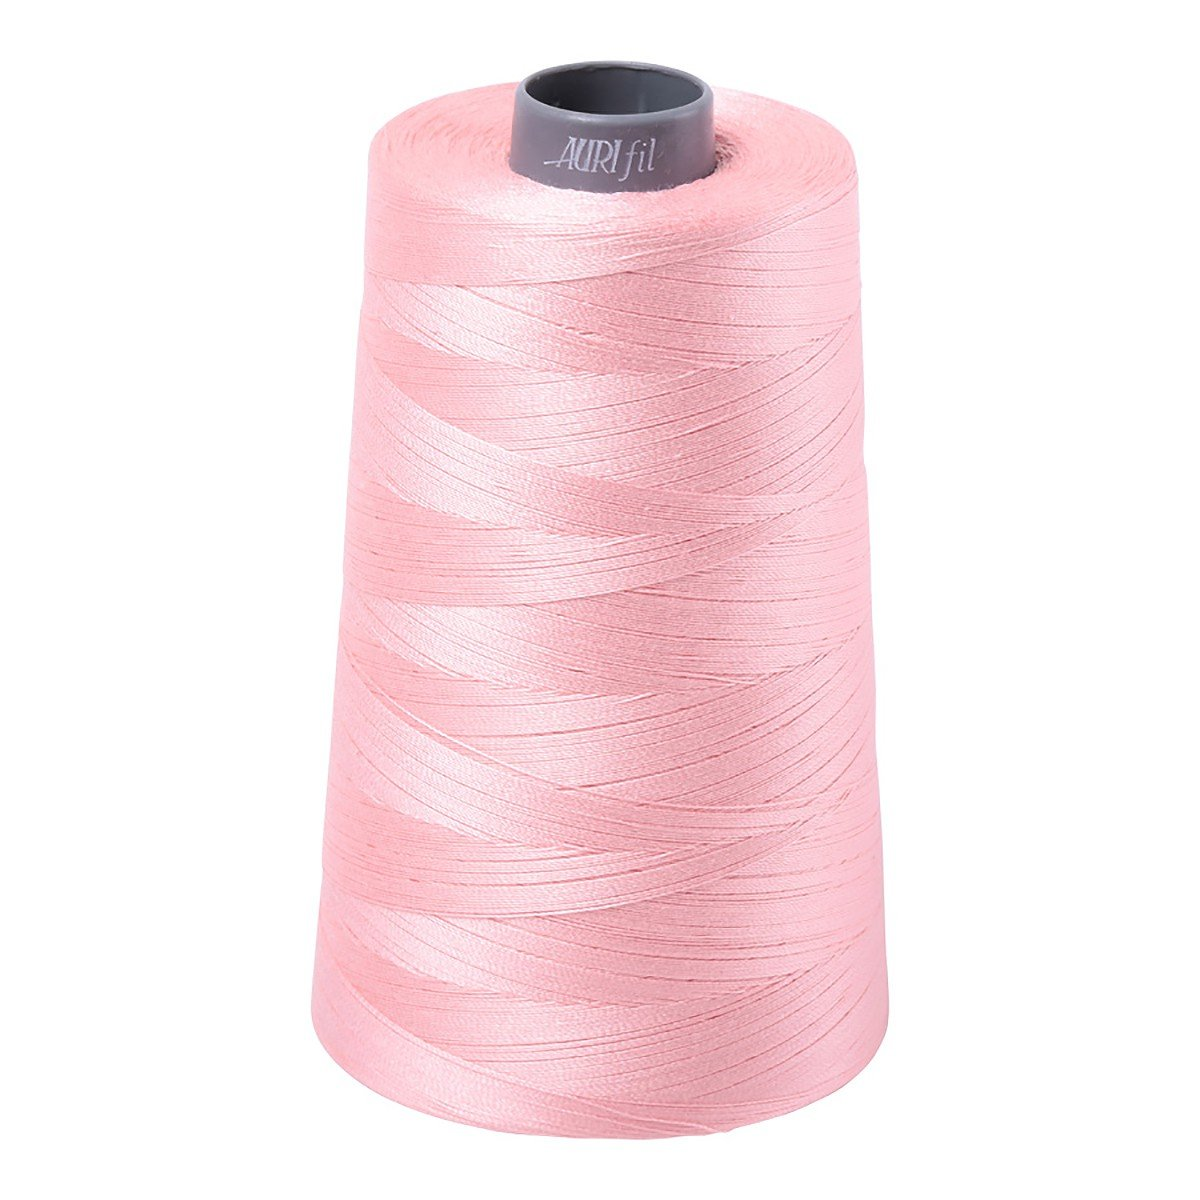 Mako (Cotton) Embroidery Thread 28wt 3609yds Blush